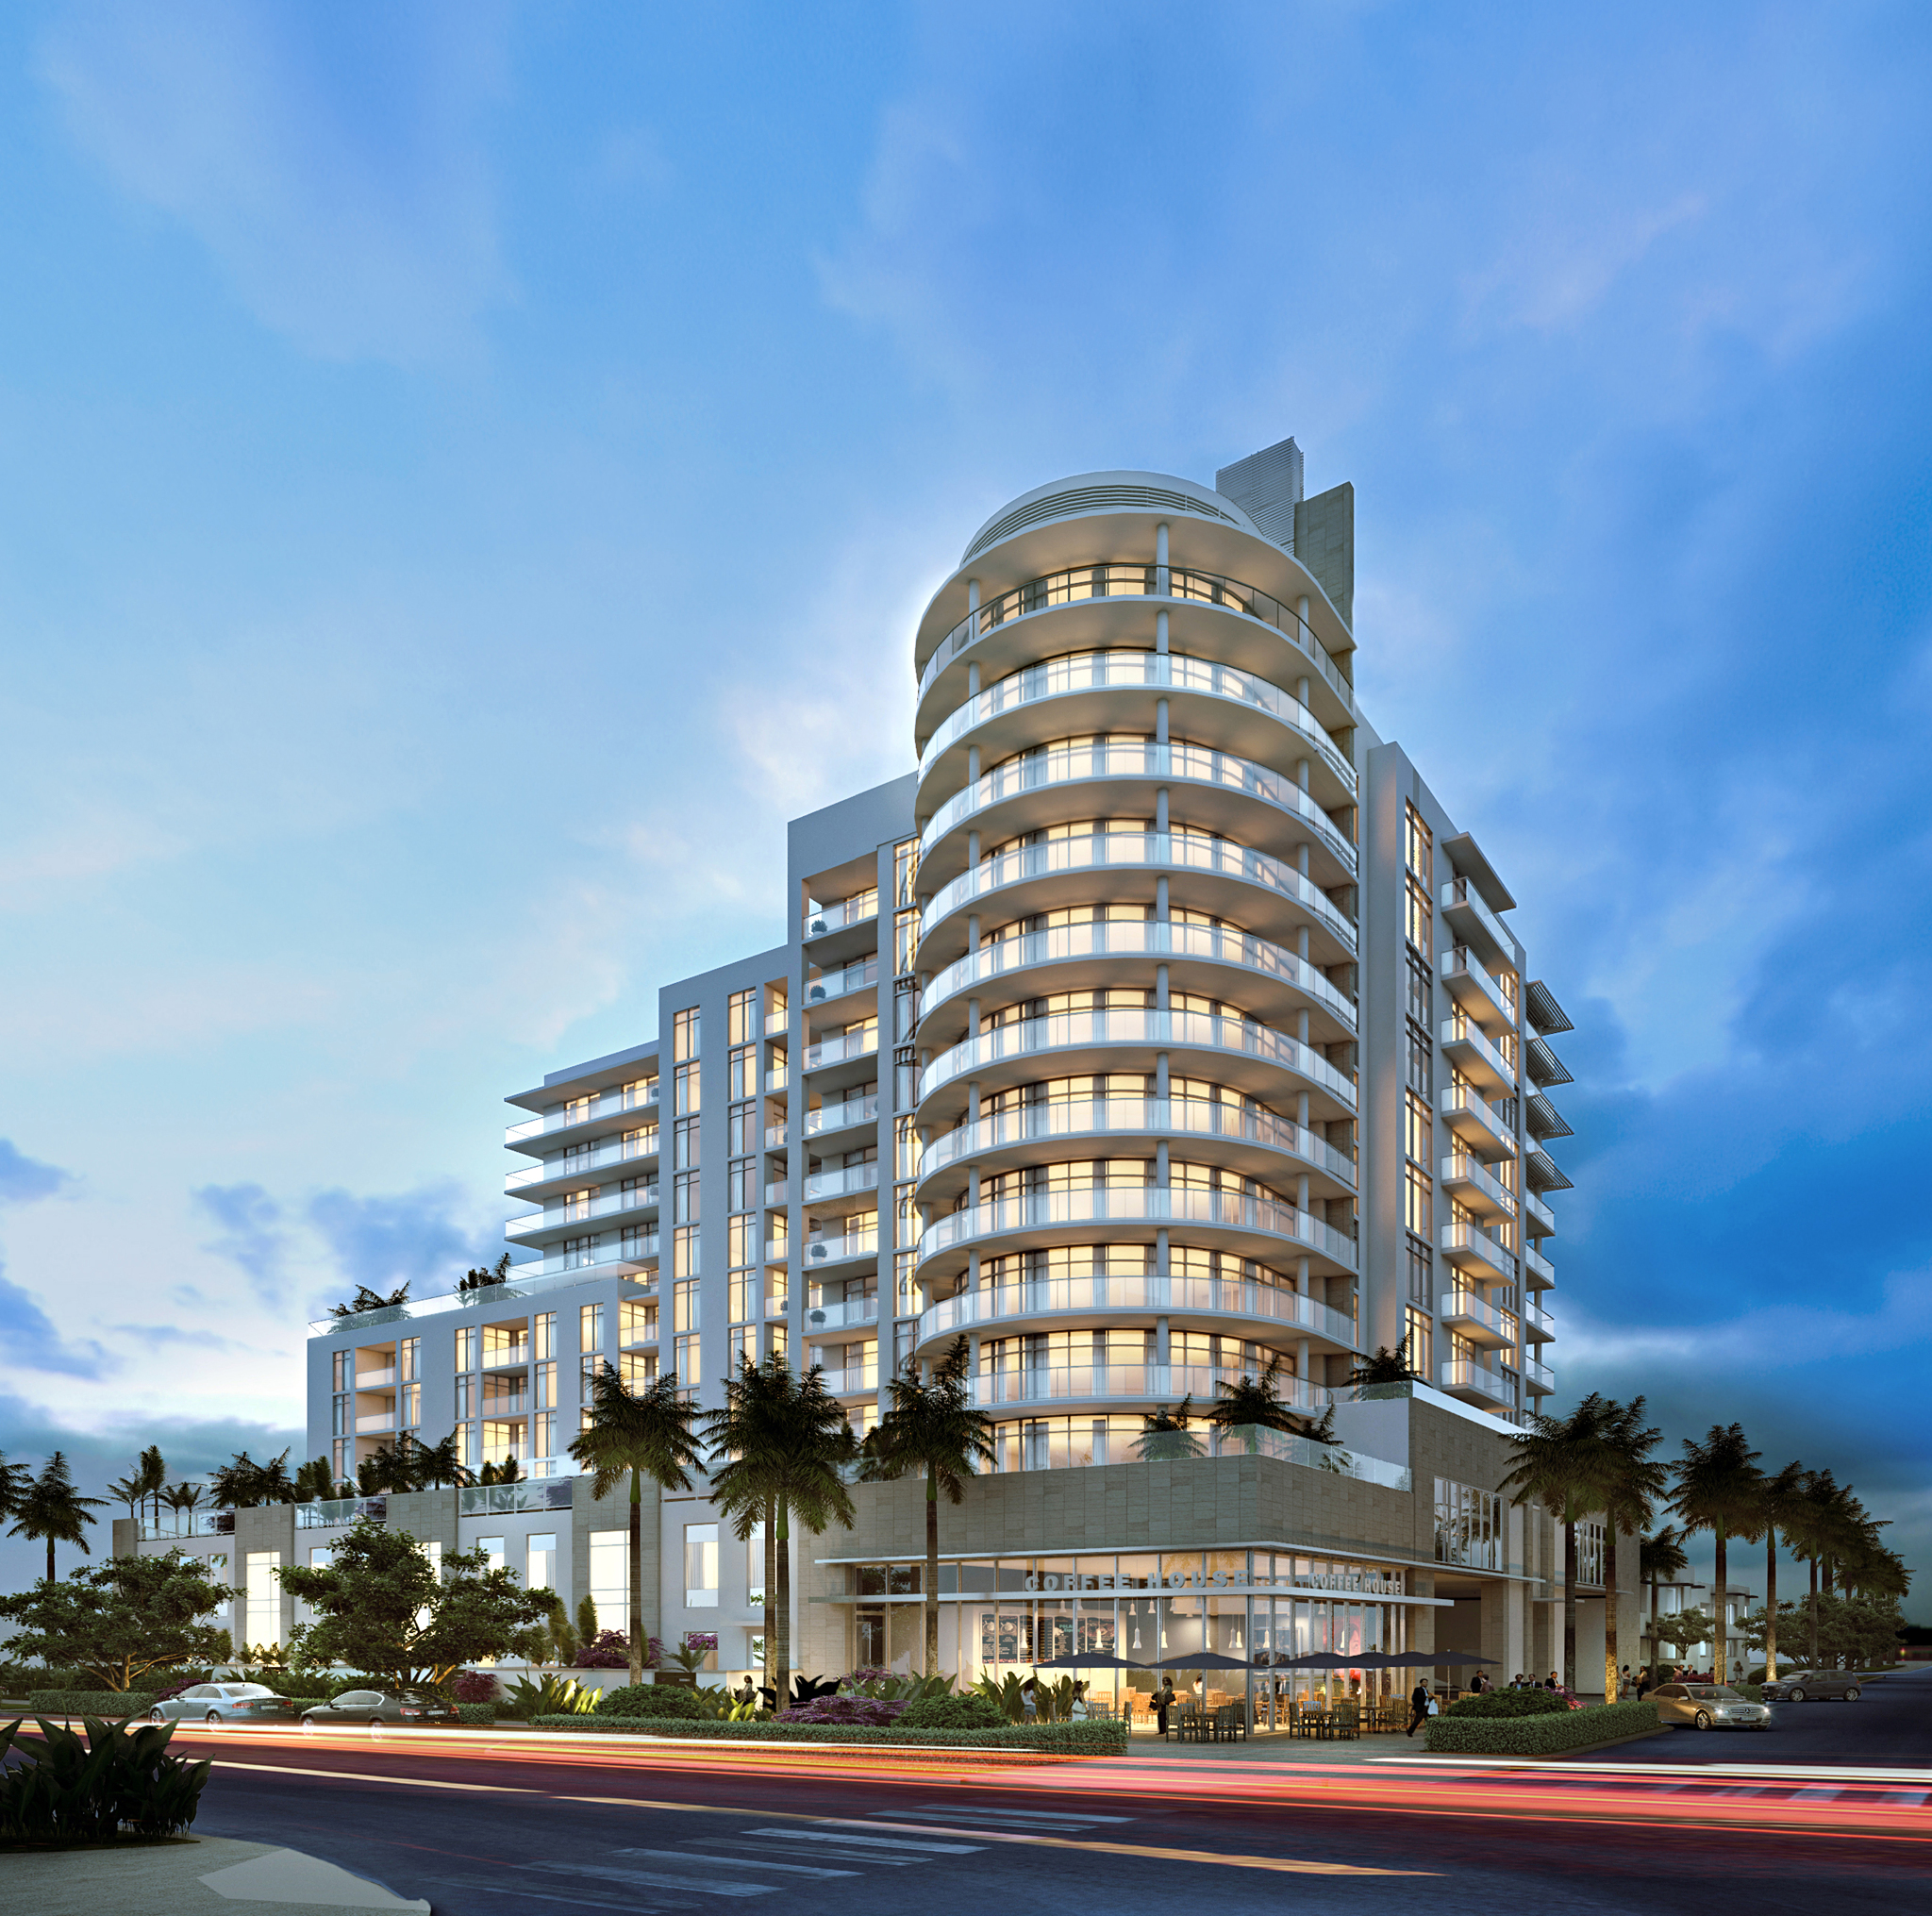 skyview image of Gale Fort Lauderdale